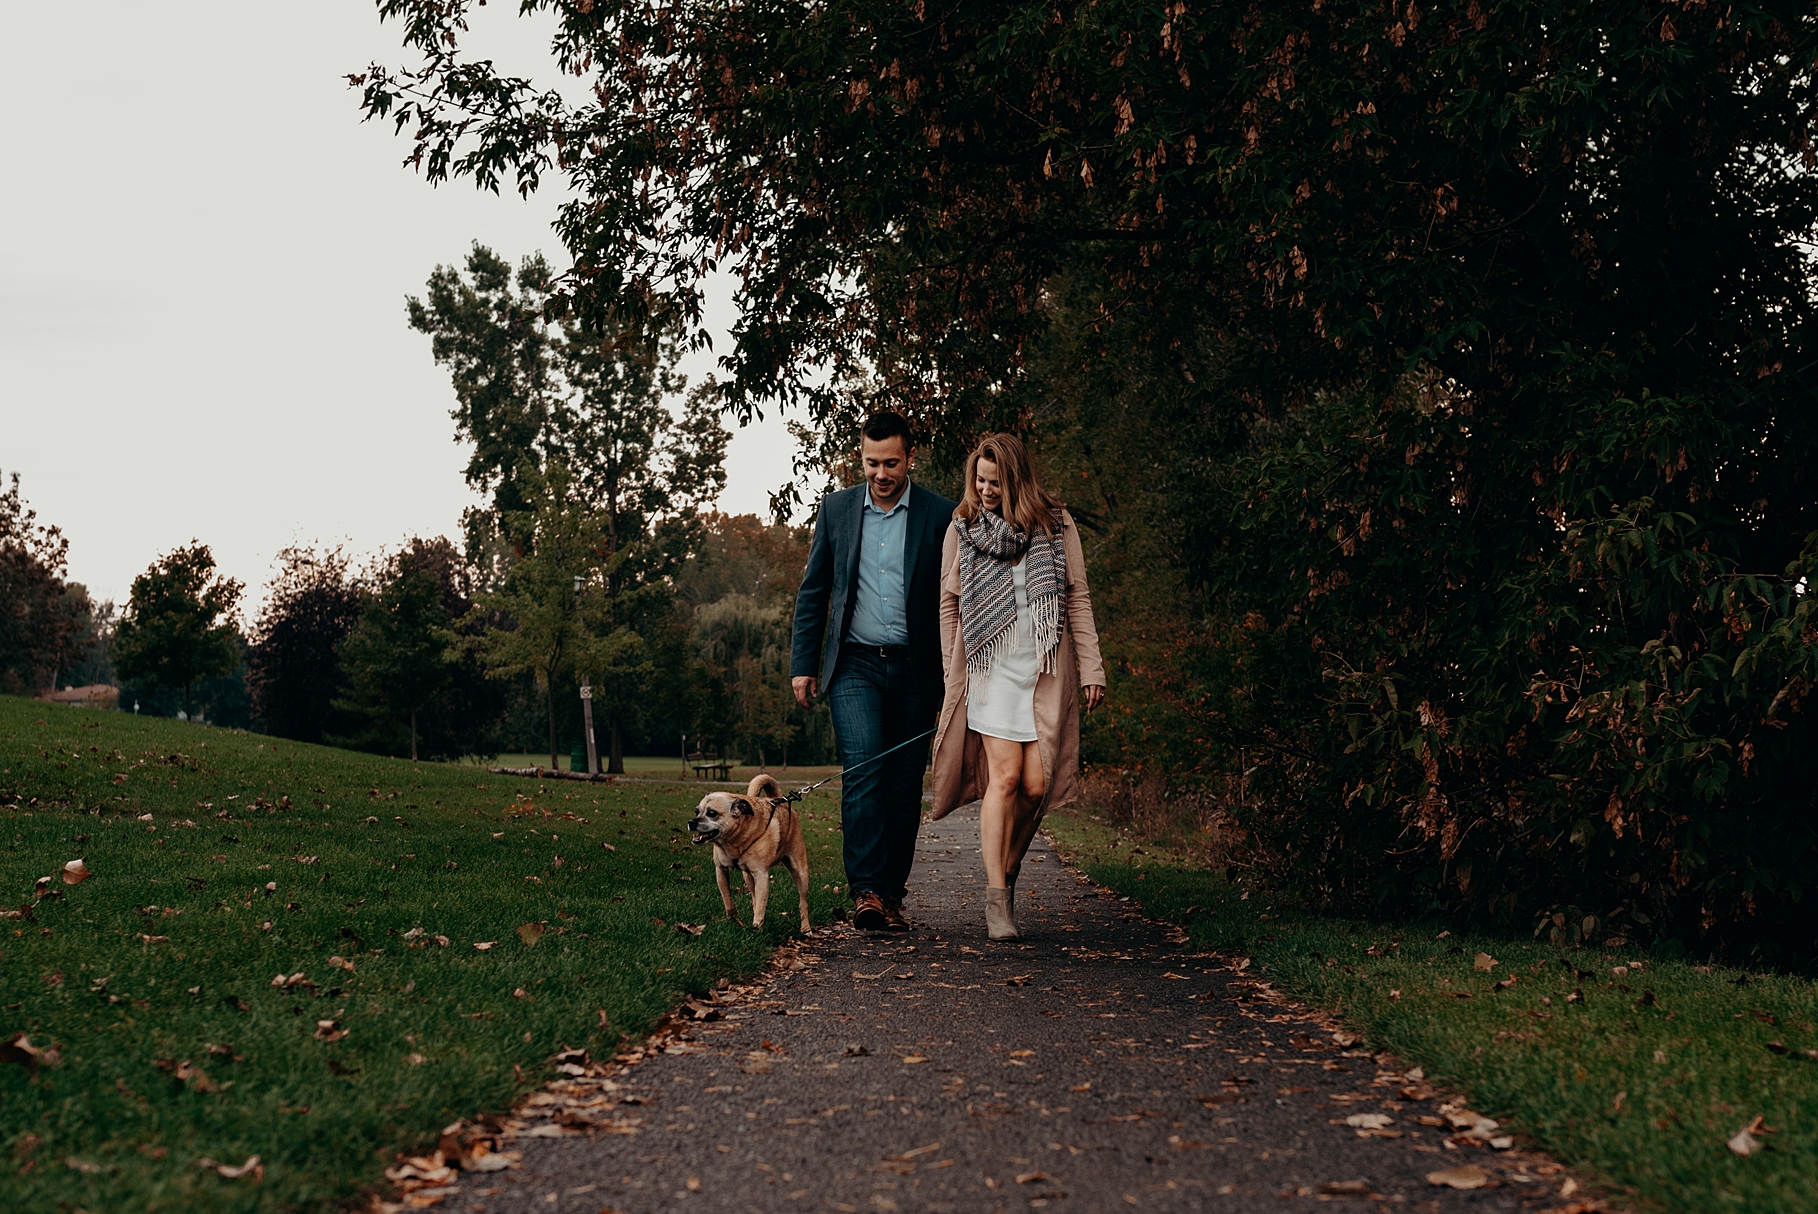 Bringing your Dog or Cat to an engagement session. Mocha Tree Studios Ottawa Toronto Montreal Wedding and Engagement Photographer and Videographer Dark Moody Intimate Authentic Modern Romantic Cinematic Best Candid 12